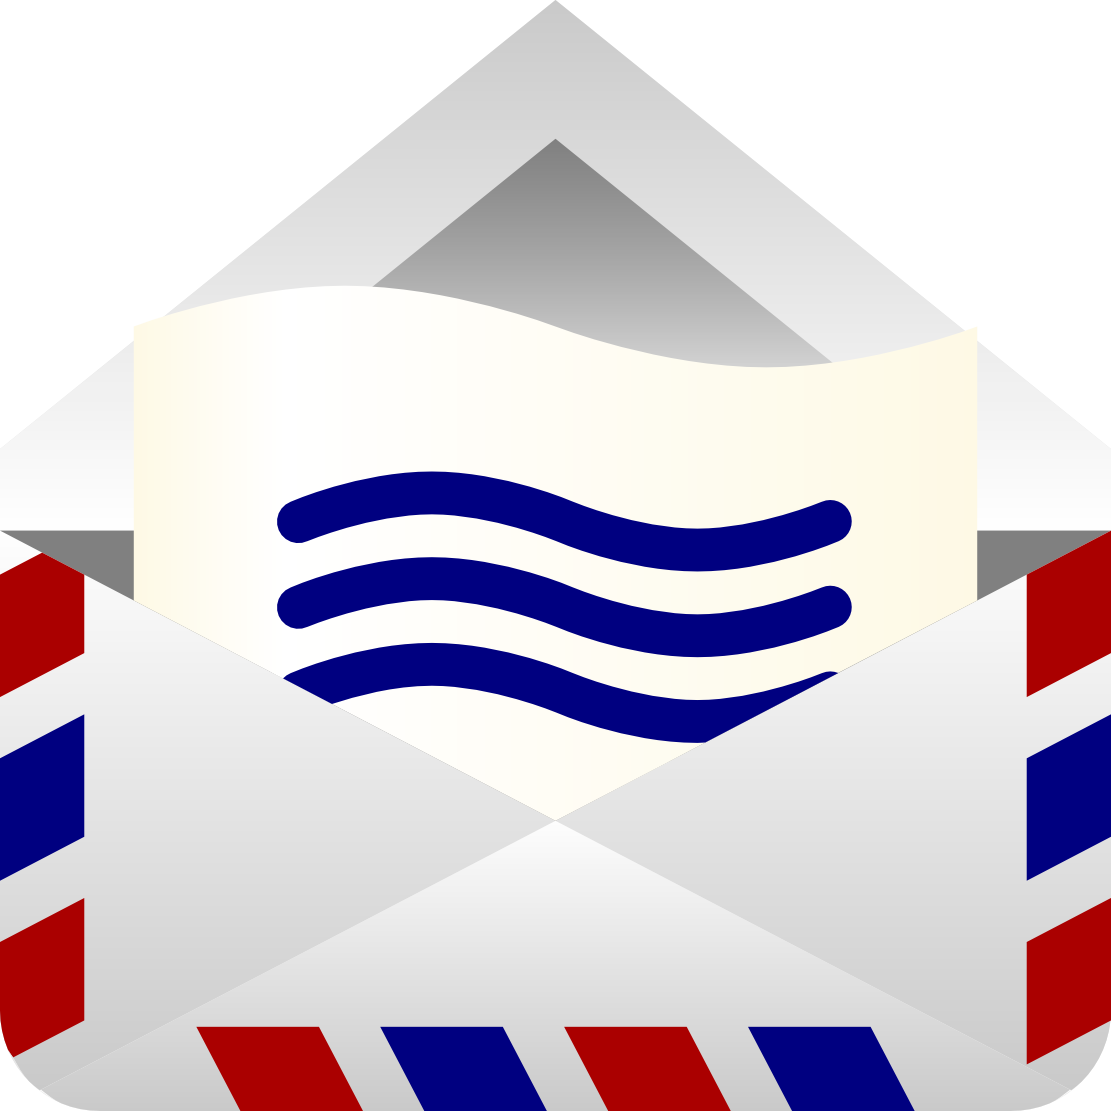 PNG Envelope Mail - 63441